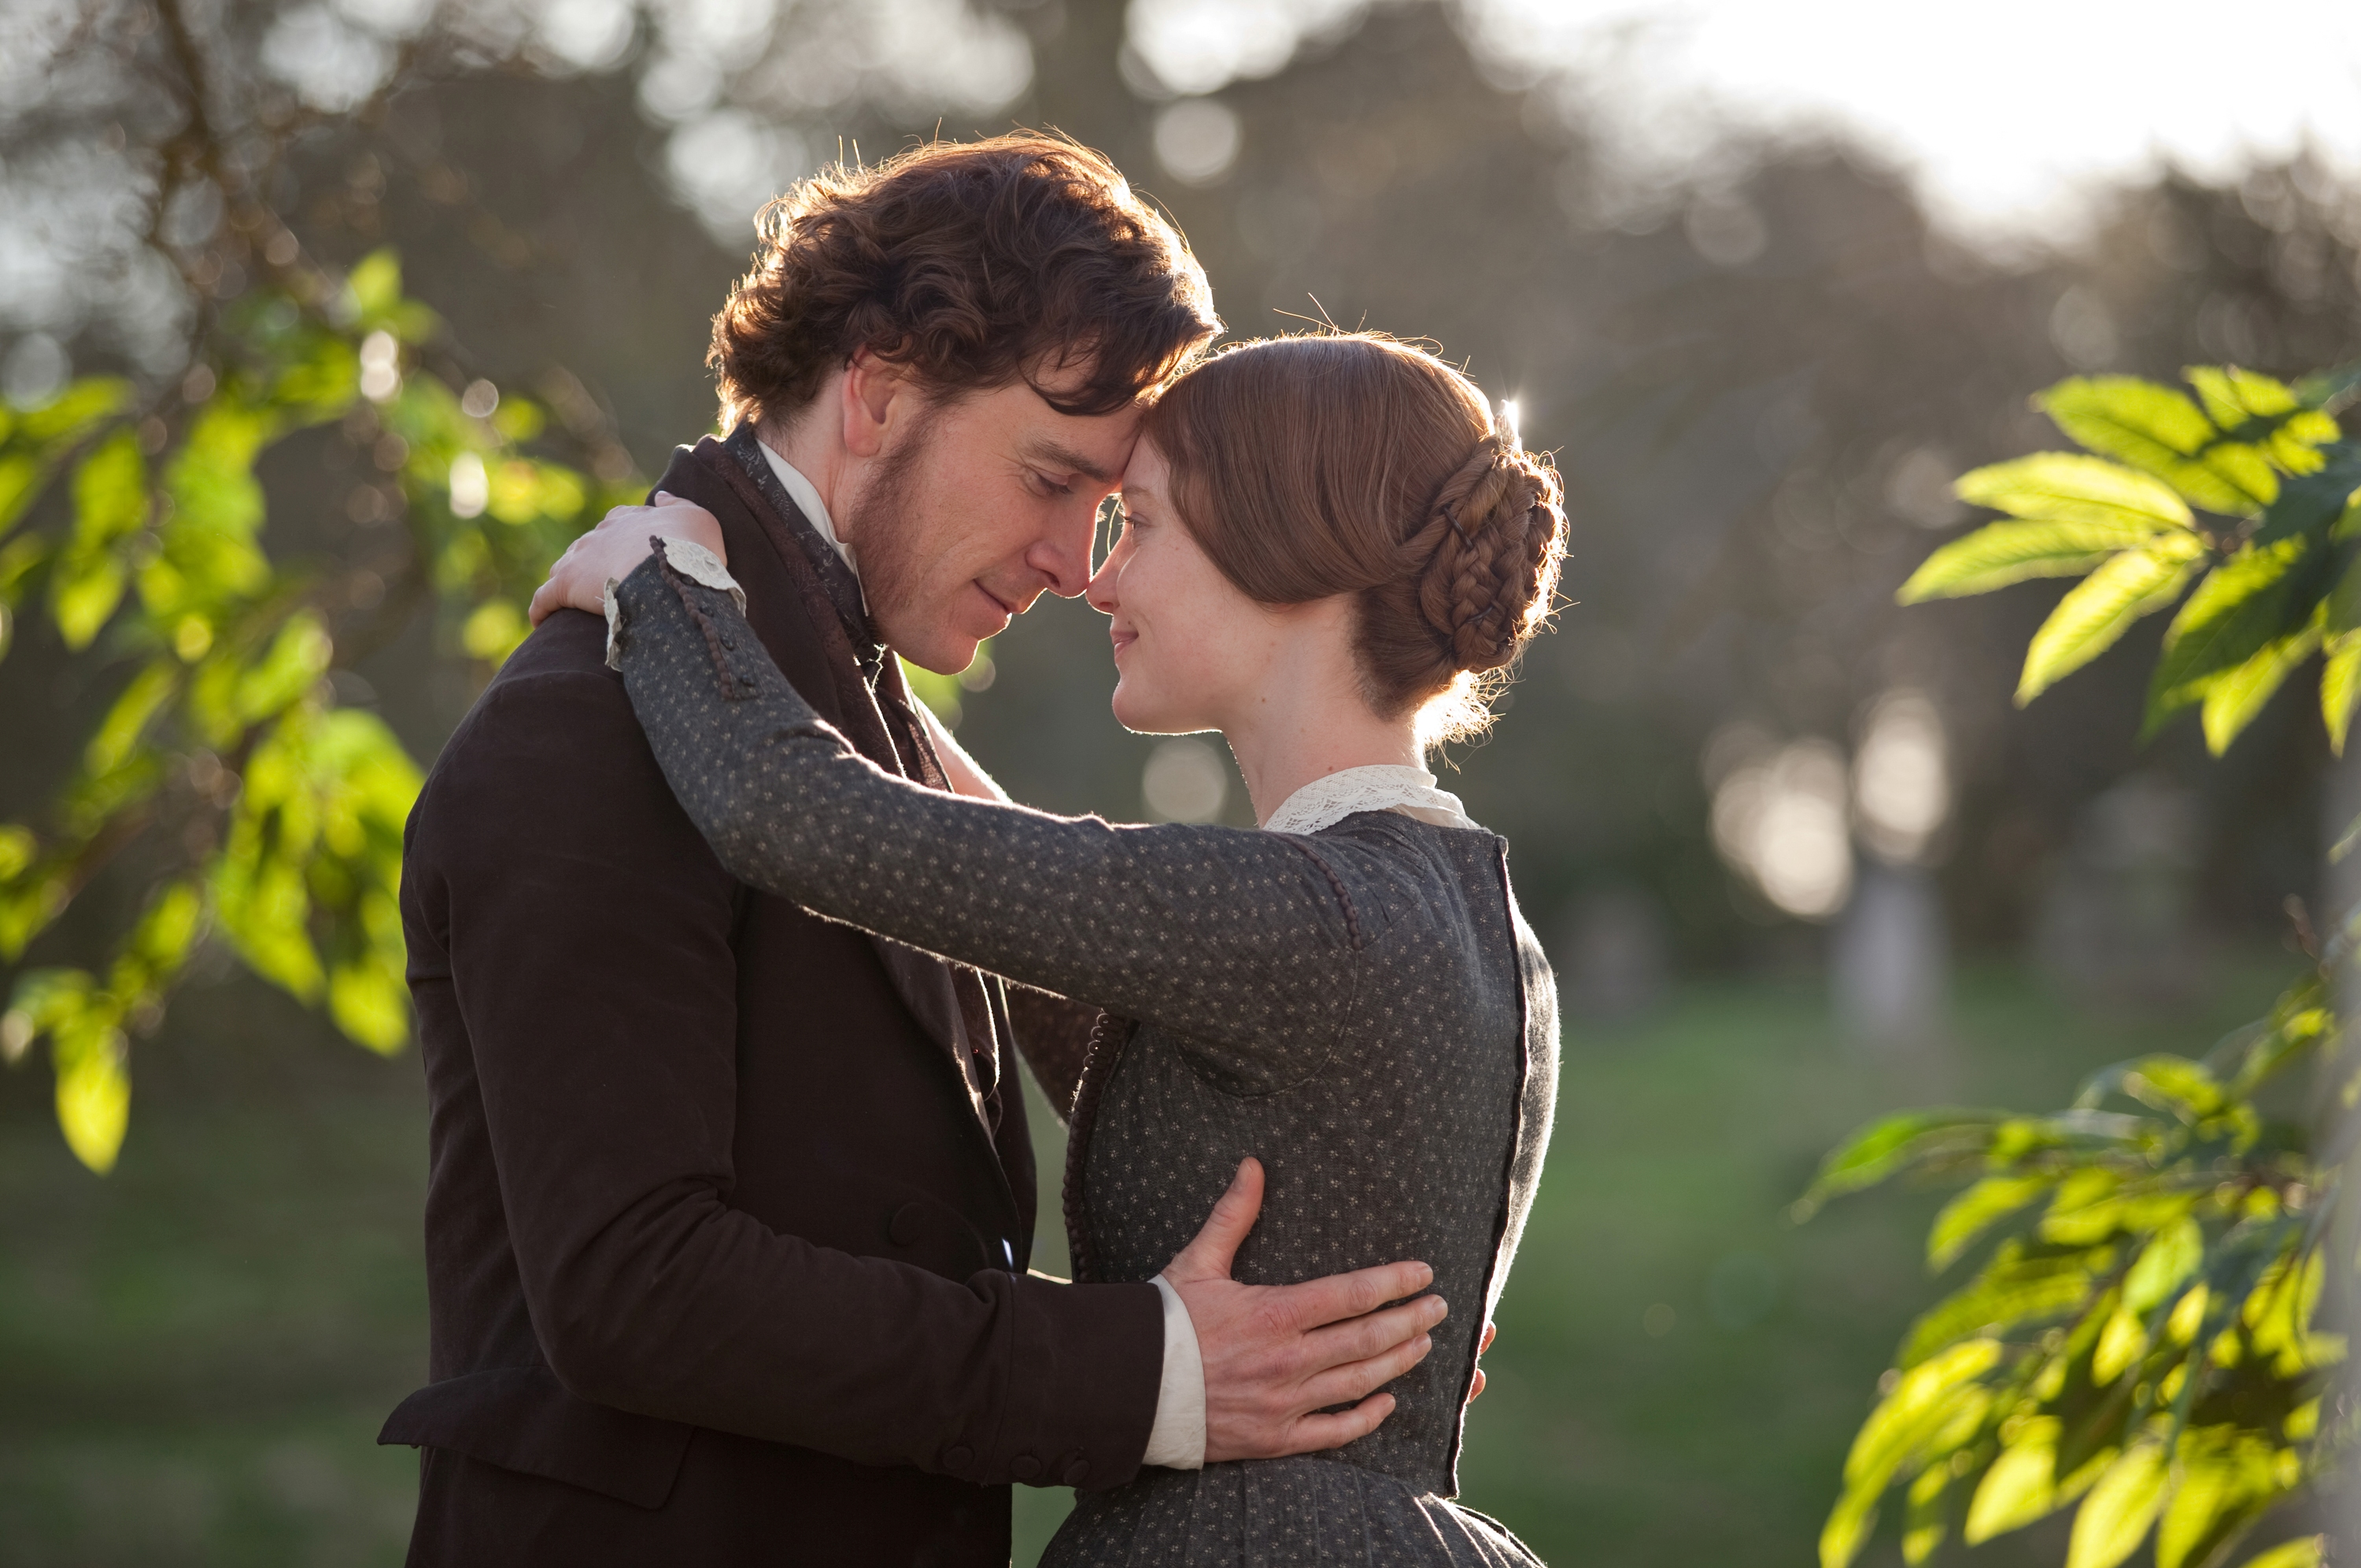 Michael Fassbender (left) and Mia Wasikowska (right) in the romantic drama JANE EYRE, a Focus Features release directed by Cary Fukunaga.  Photo Credit: Laurie Sparham